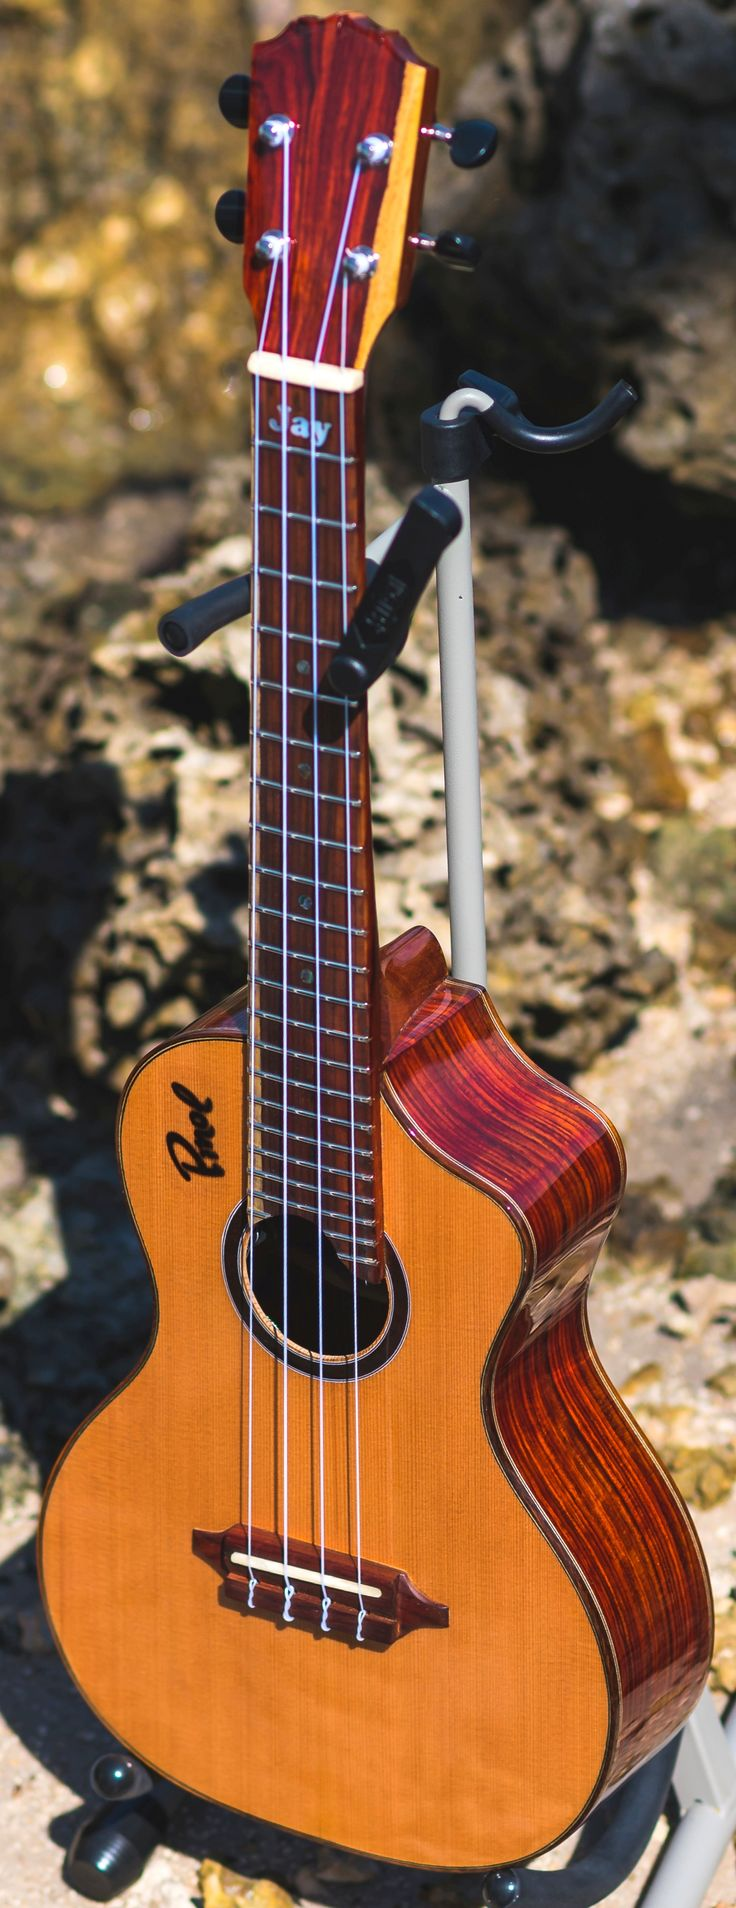 164 best music images on pinterest guitars instruments and a database of ukulele and banjolele manufacturers importers luthiers and brands both old and current uke ukelele banjo cavaco cavaquinho ukulelen hexwebz Image collections